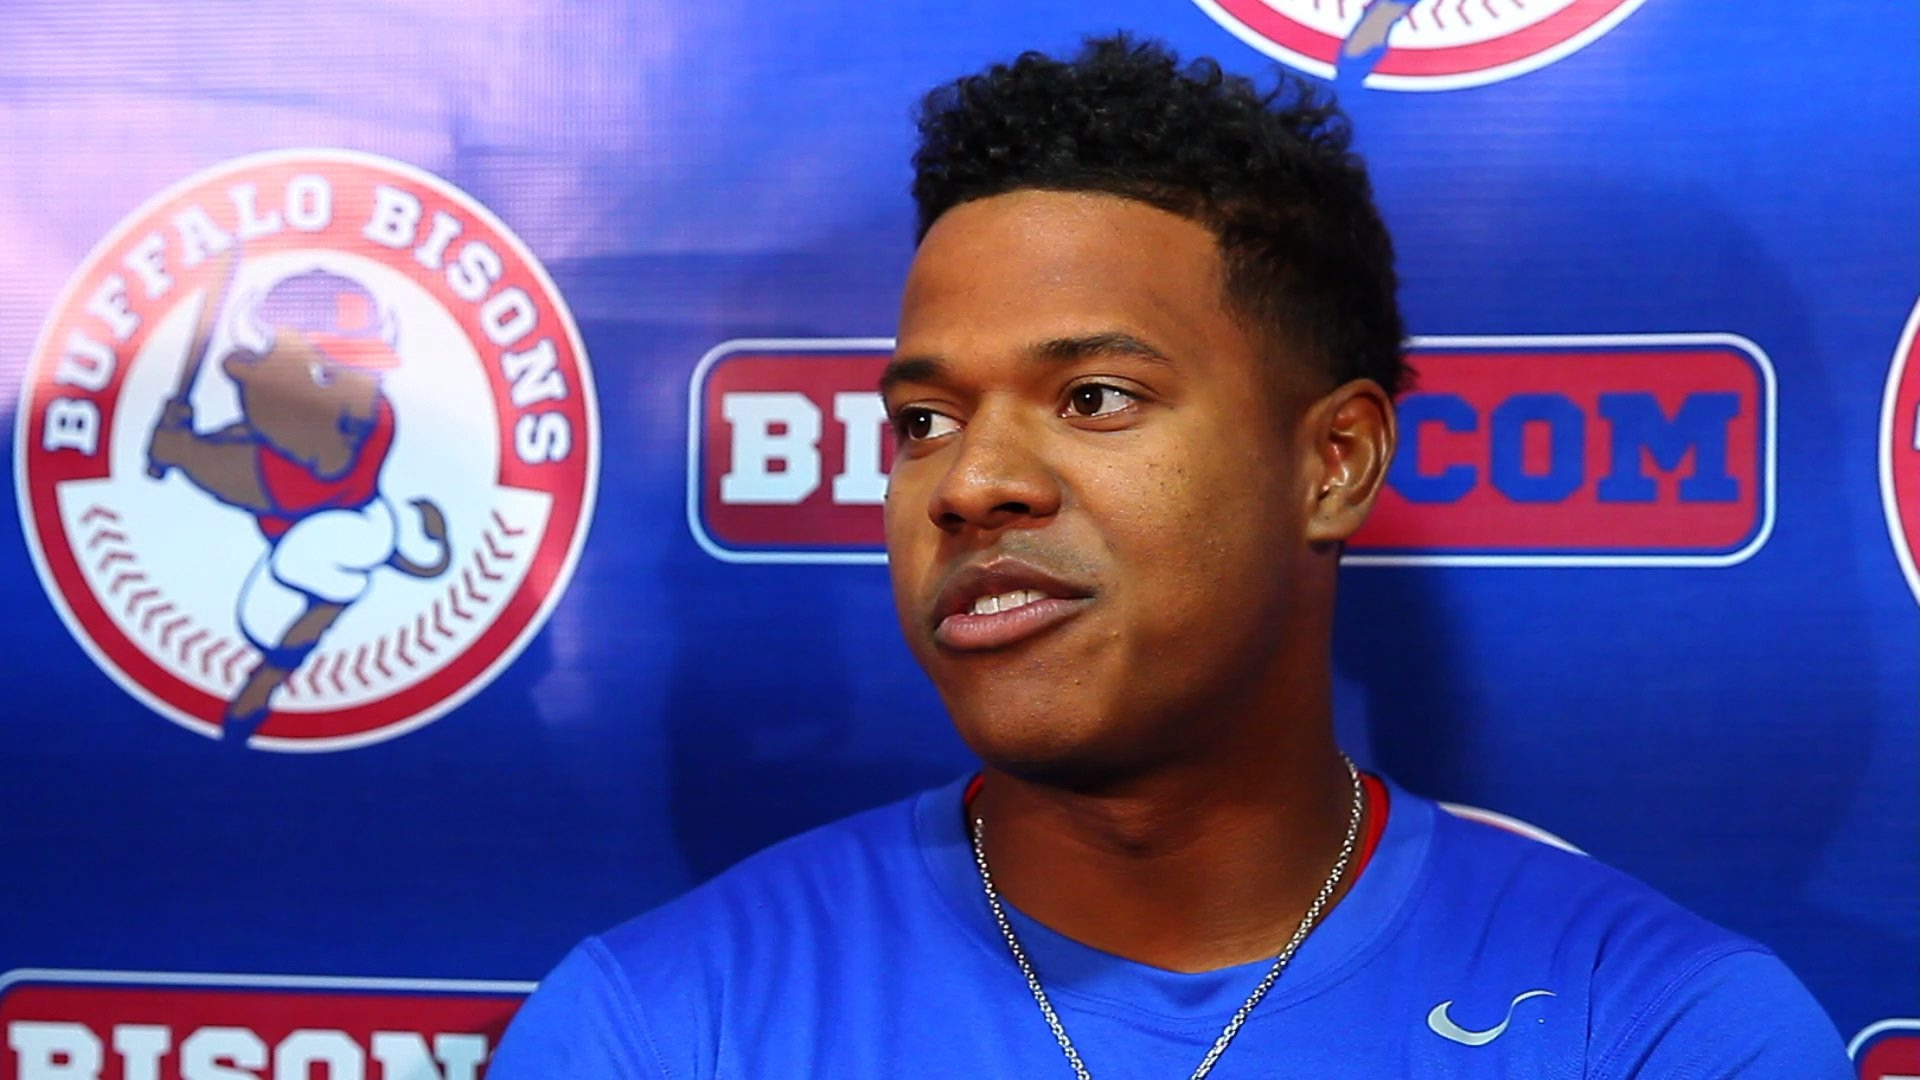 """Bisons' Opening Day pitcher Marcus Stroman, in only his second professional season, is """"very advanced for his age and experience."""""""